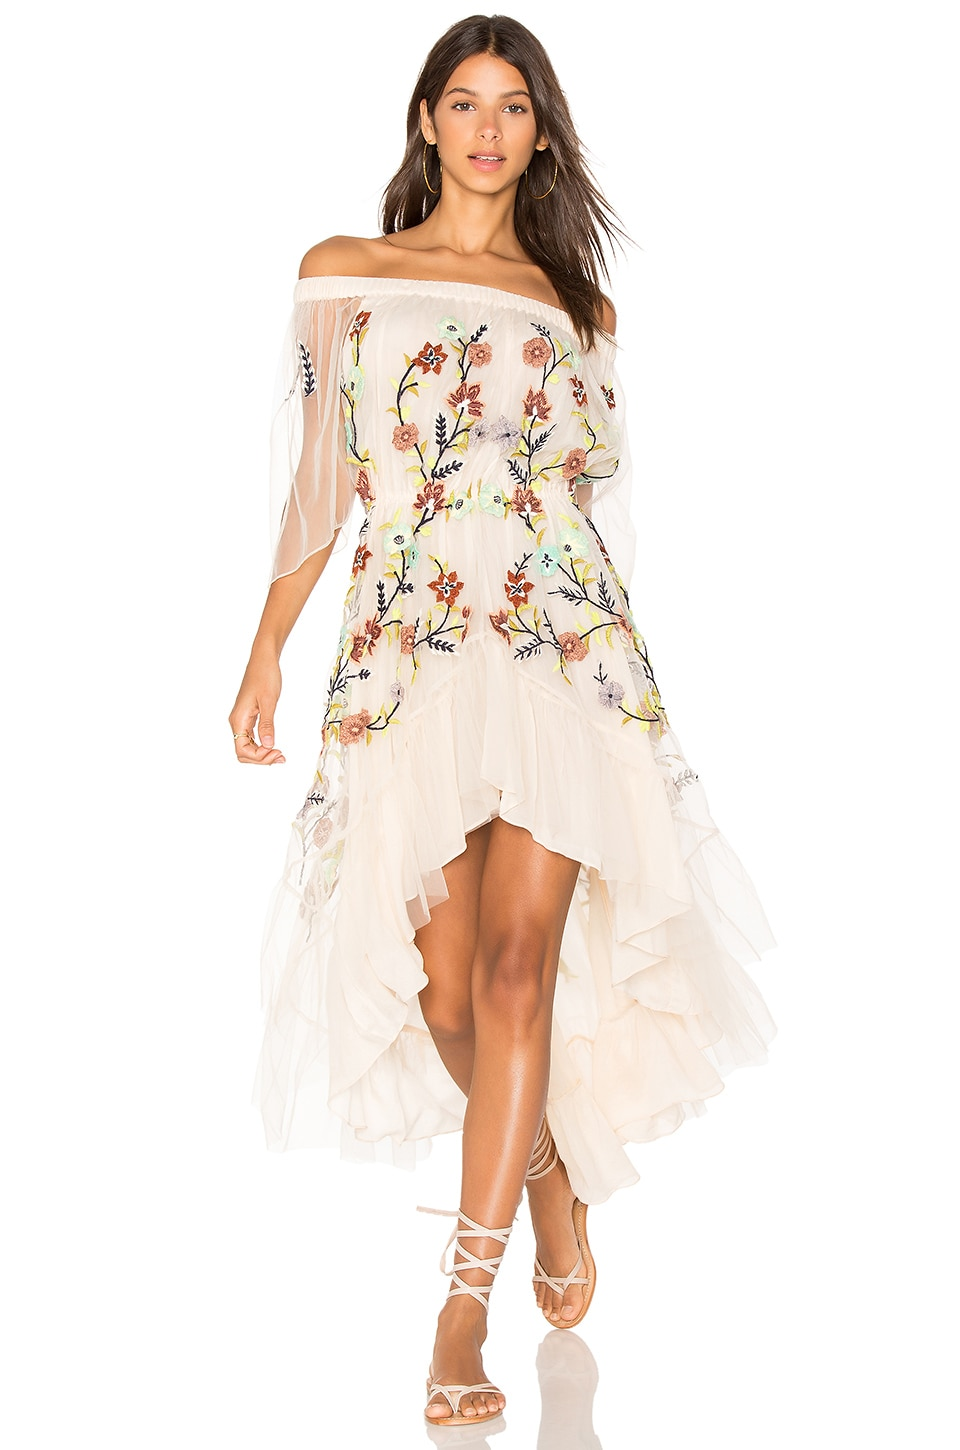 ROCOCO SAND Off the Shoulder Dress in Nude